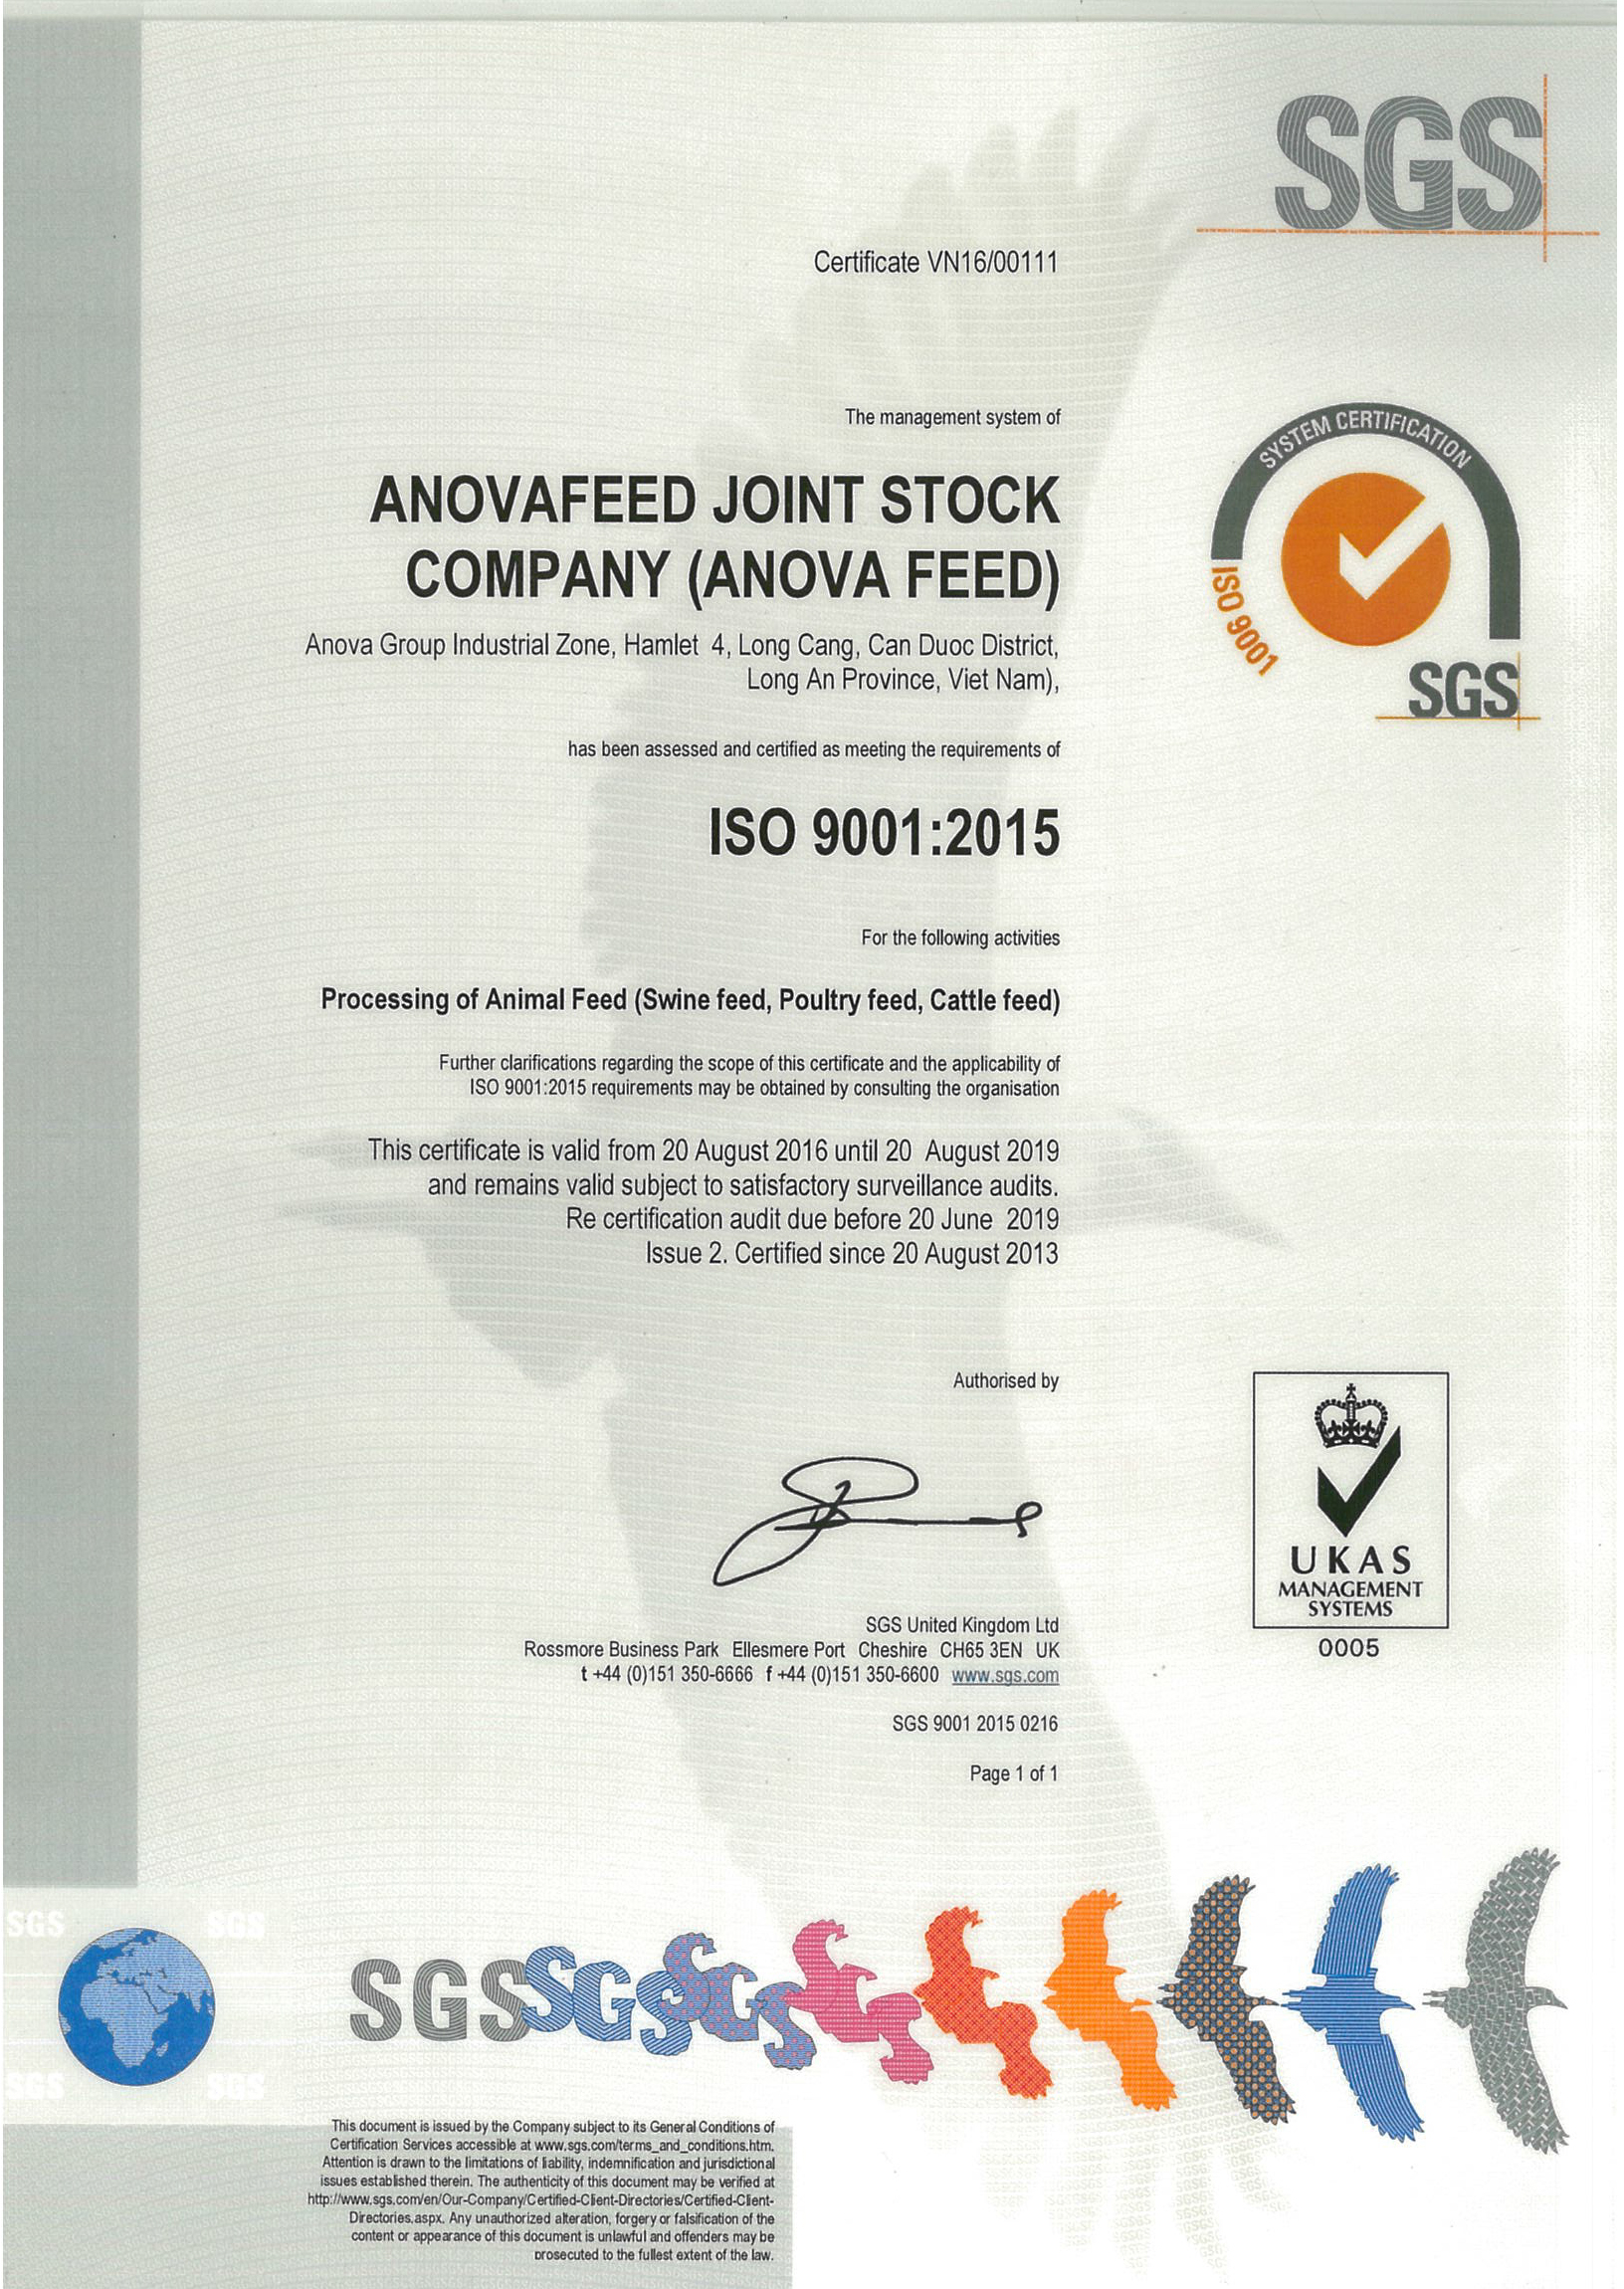 ISO 9001 : 2015 certificate for quality management systems